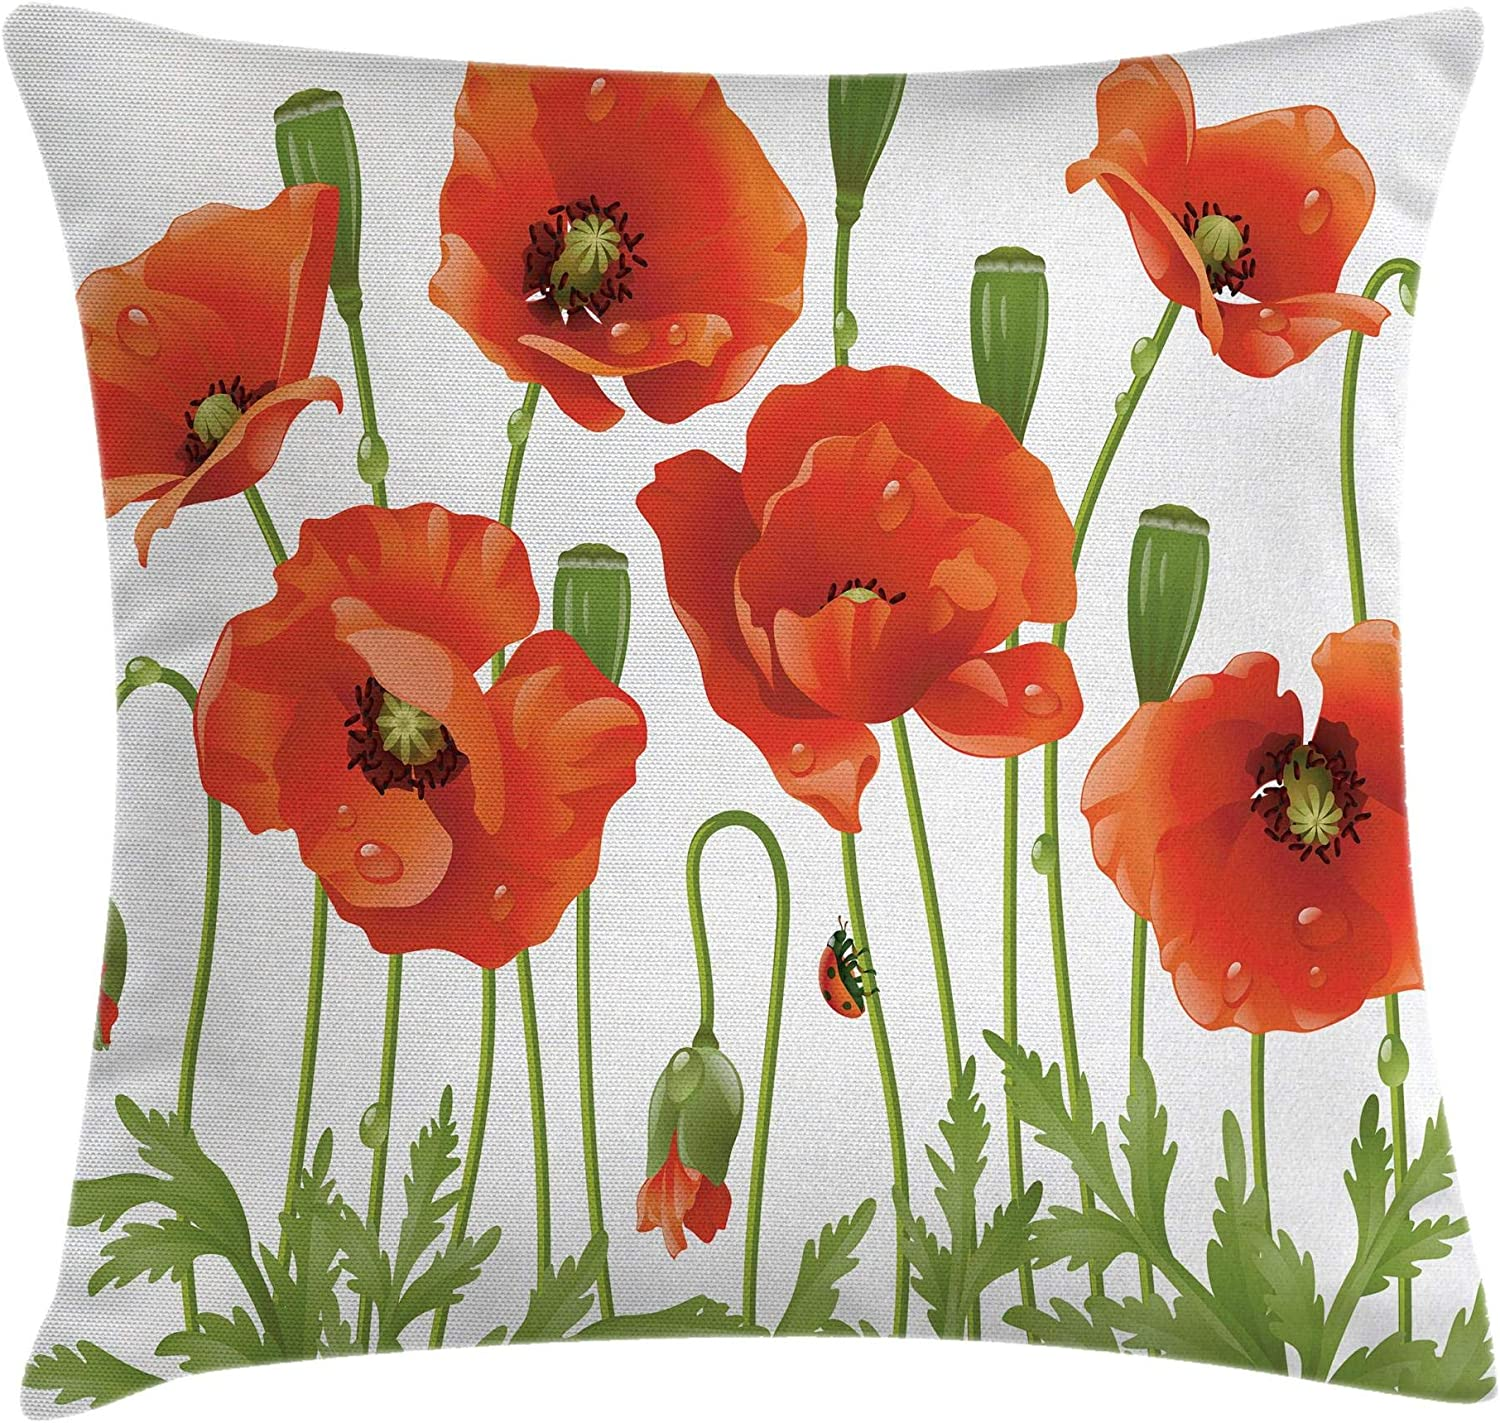 Ambesonne Flower Throw Pillow Cushion Cover, Spring Wild Flower Poppy Ladybug Leaf Springtime Garden Nature Backyard Print, Decorative Square Accent Pillow Case, 16